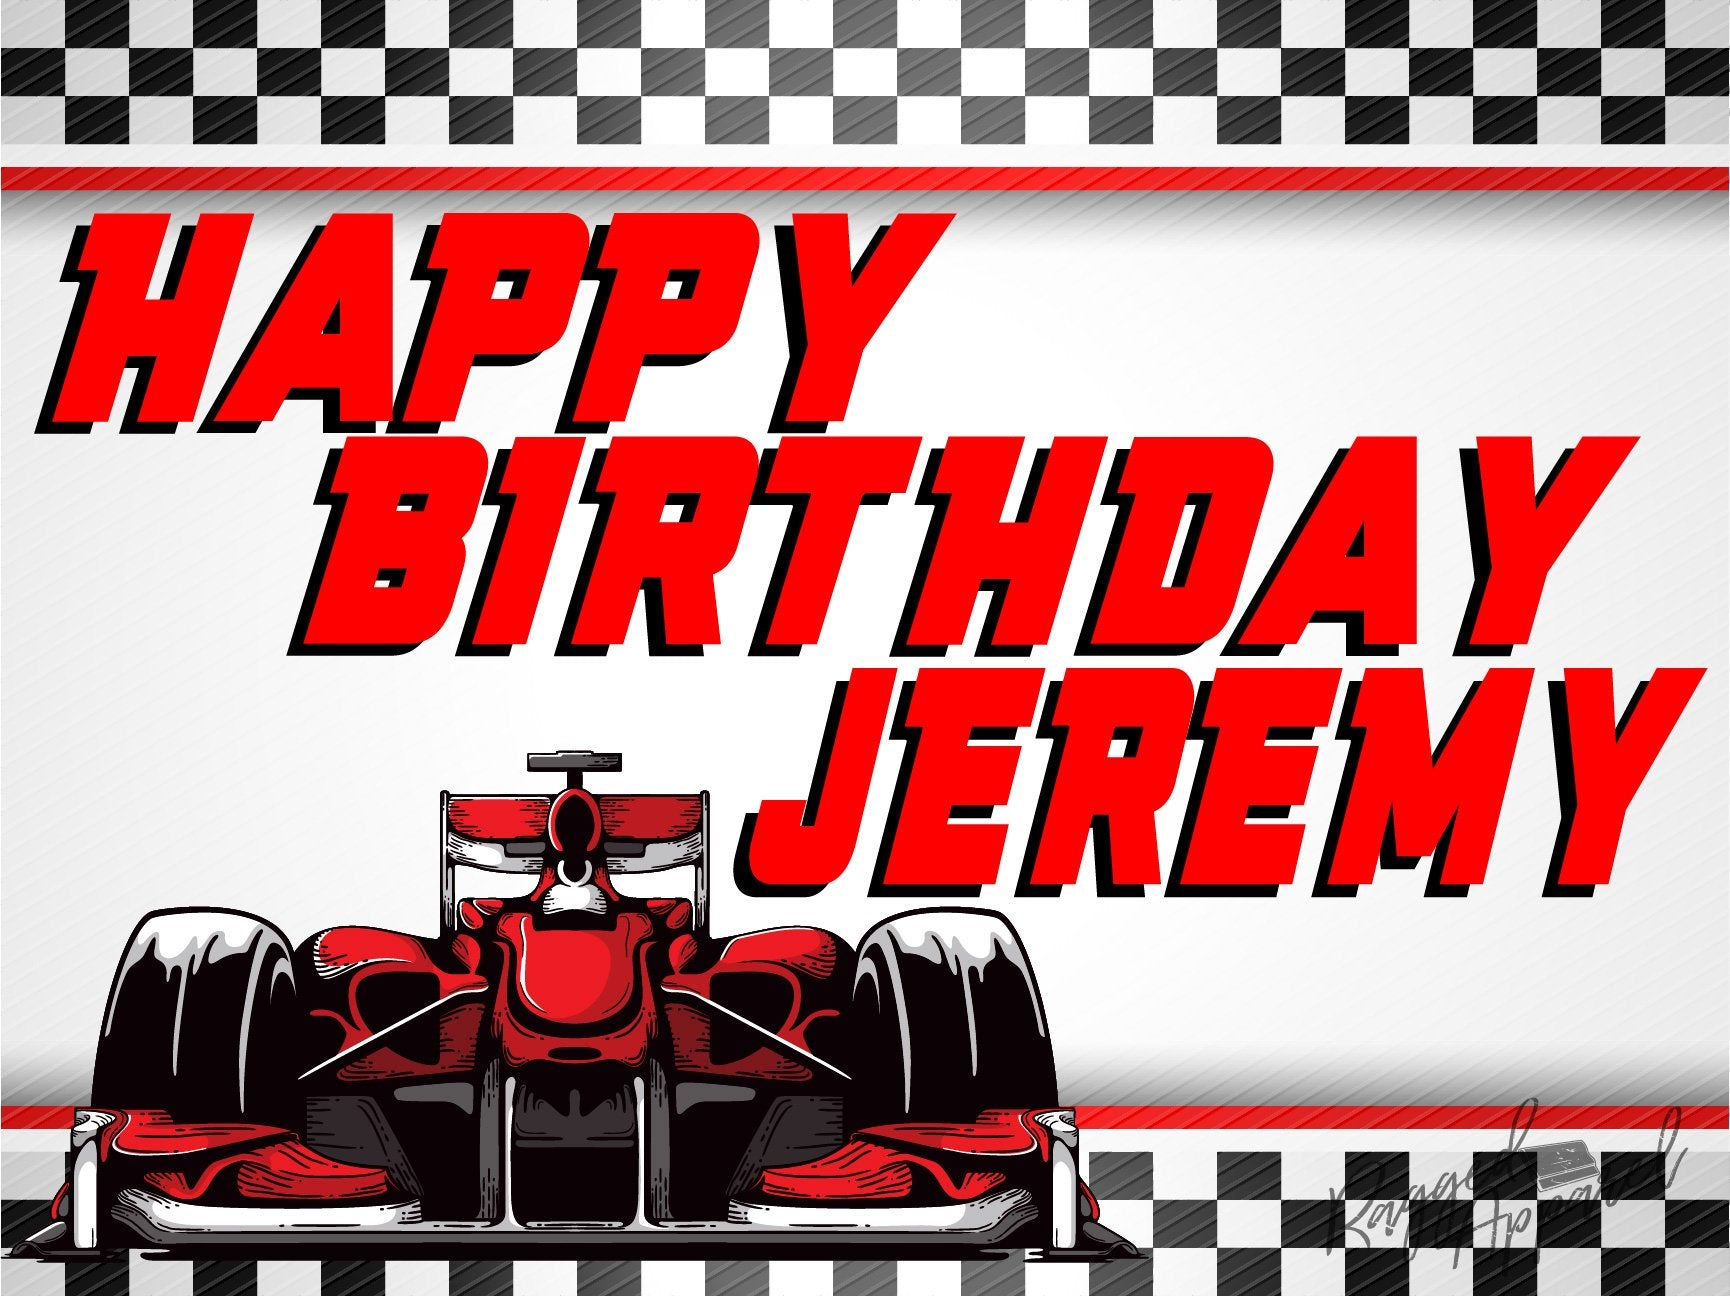 Boys Personalized Racecar Birthday Sign - Ragged Apparel Screen Printing and Signs - www.nmshirts.com